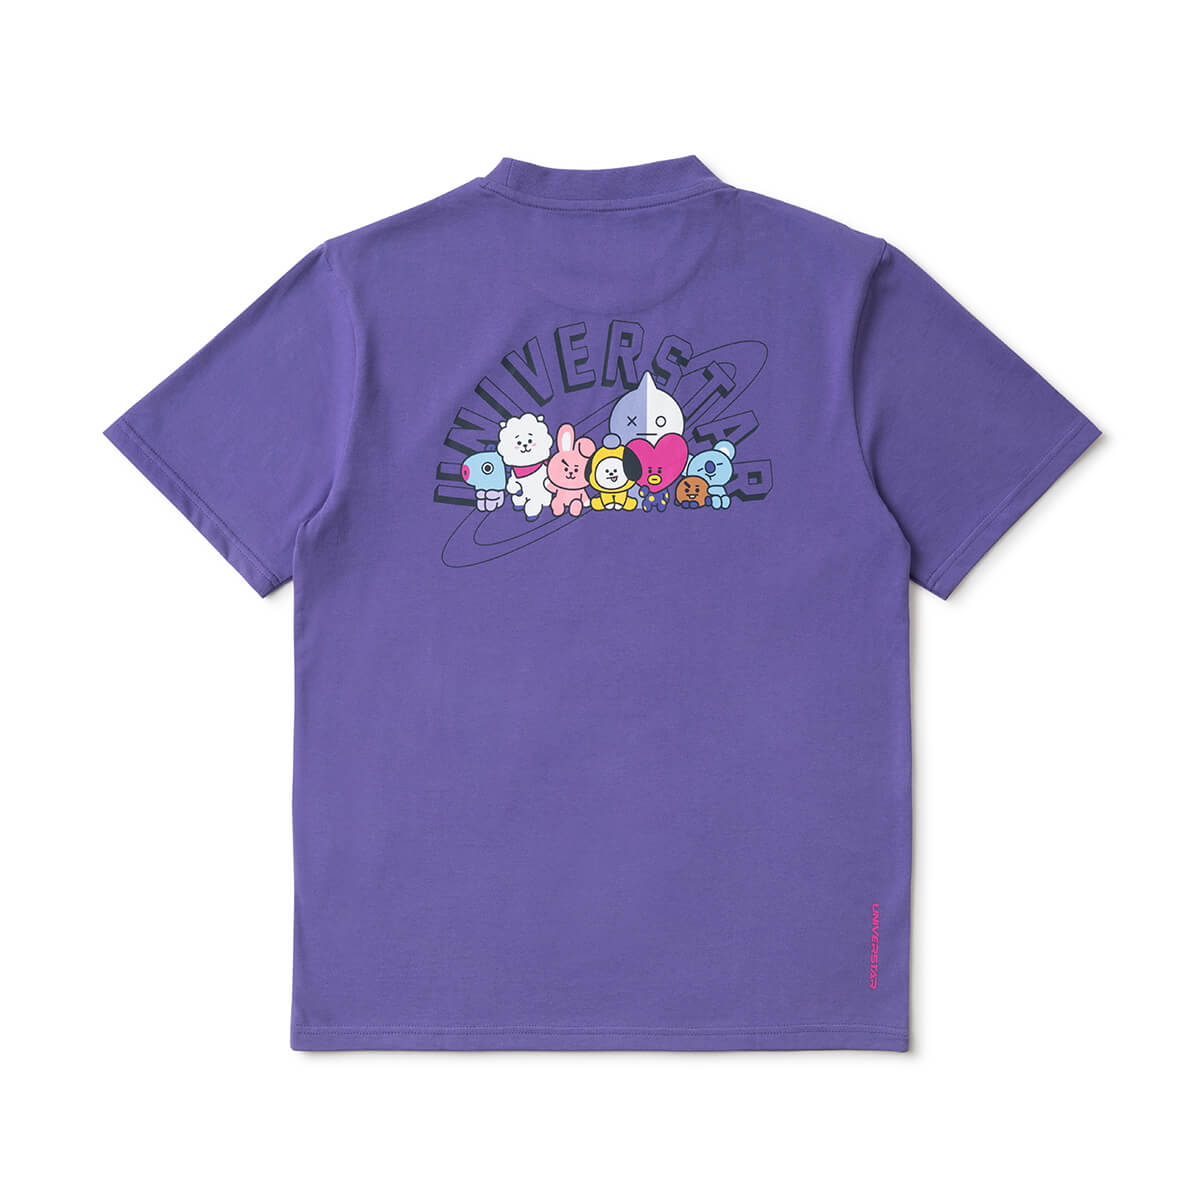 BT21 20 Space Wappen Hemisphere Lettering T-Shirt Purple